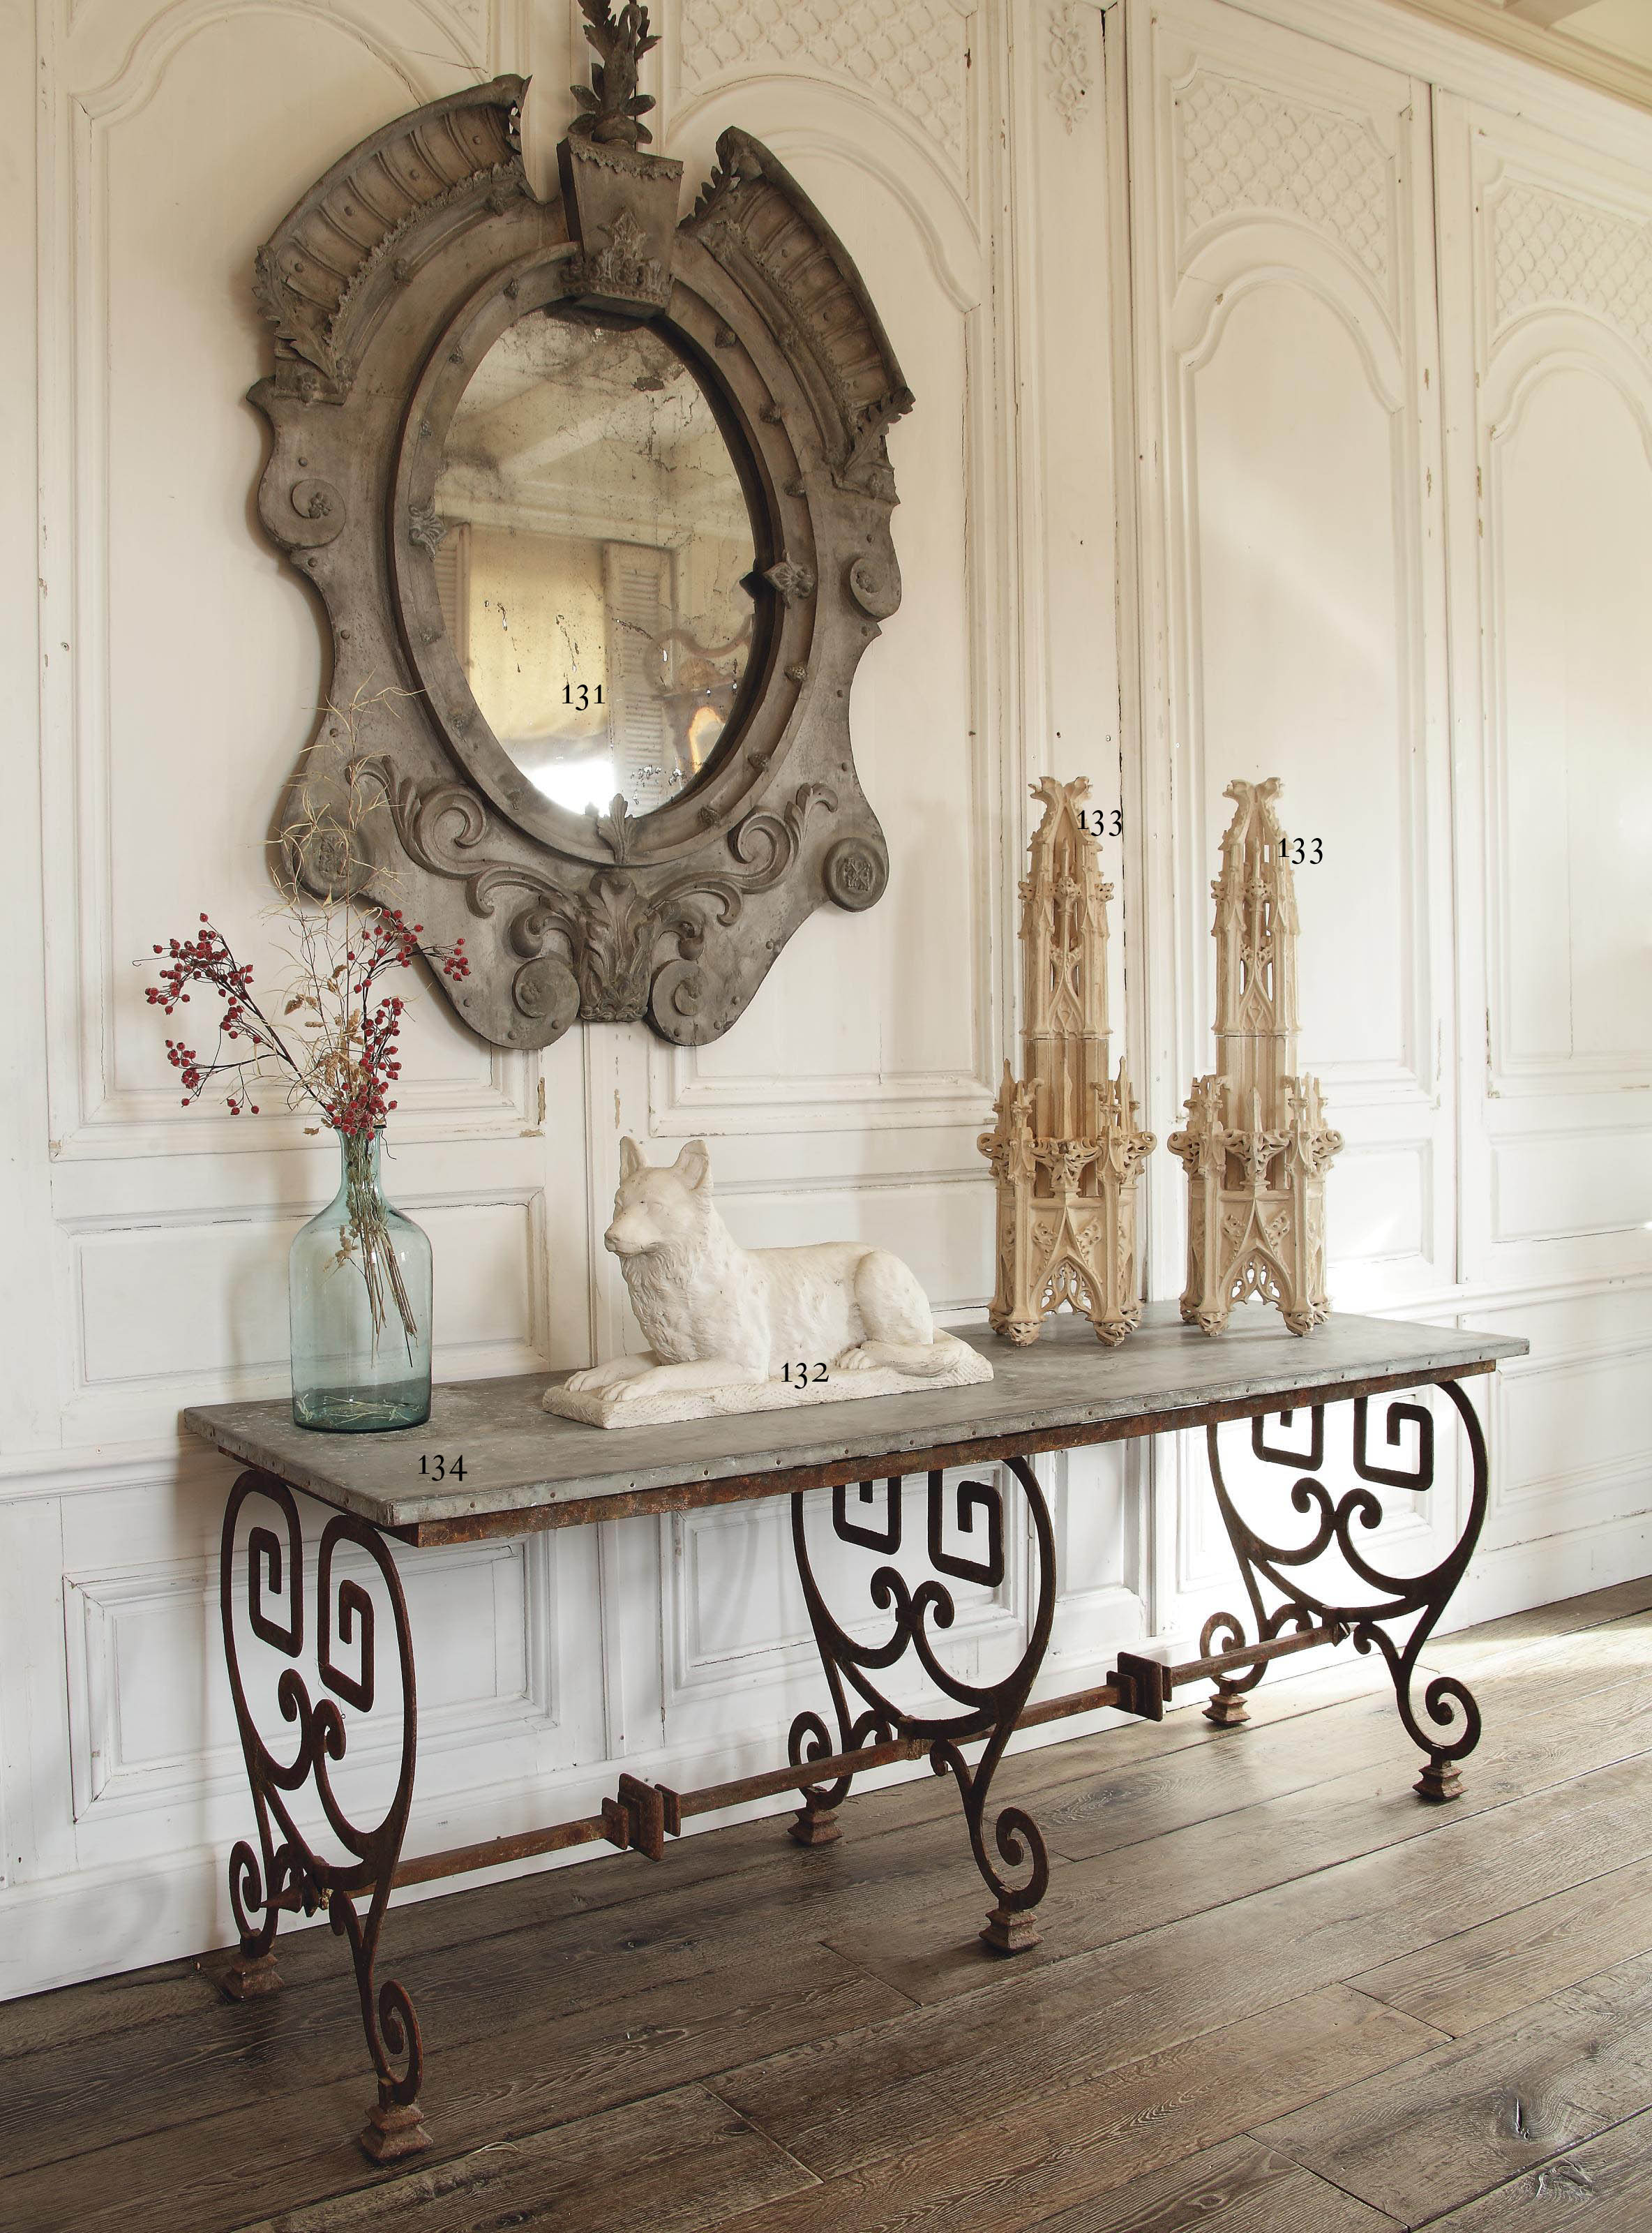 A French wrought-iron table